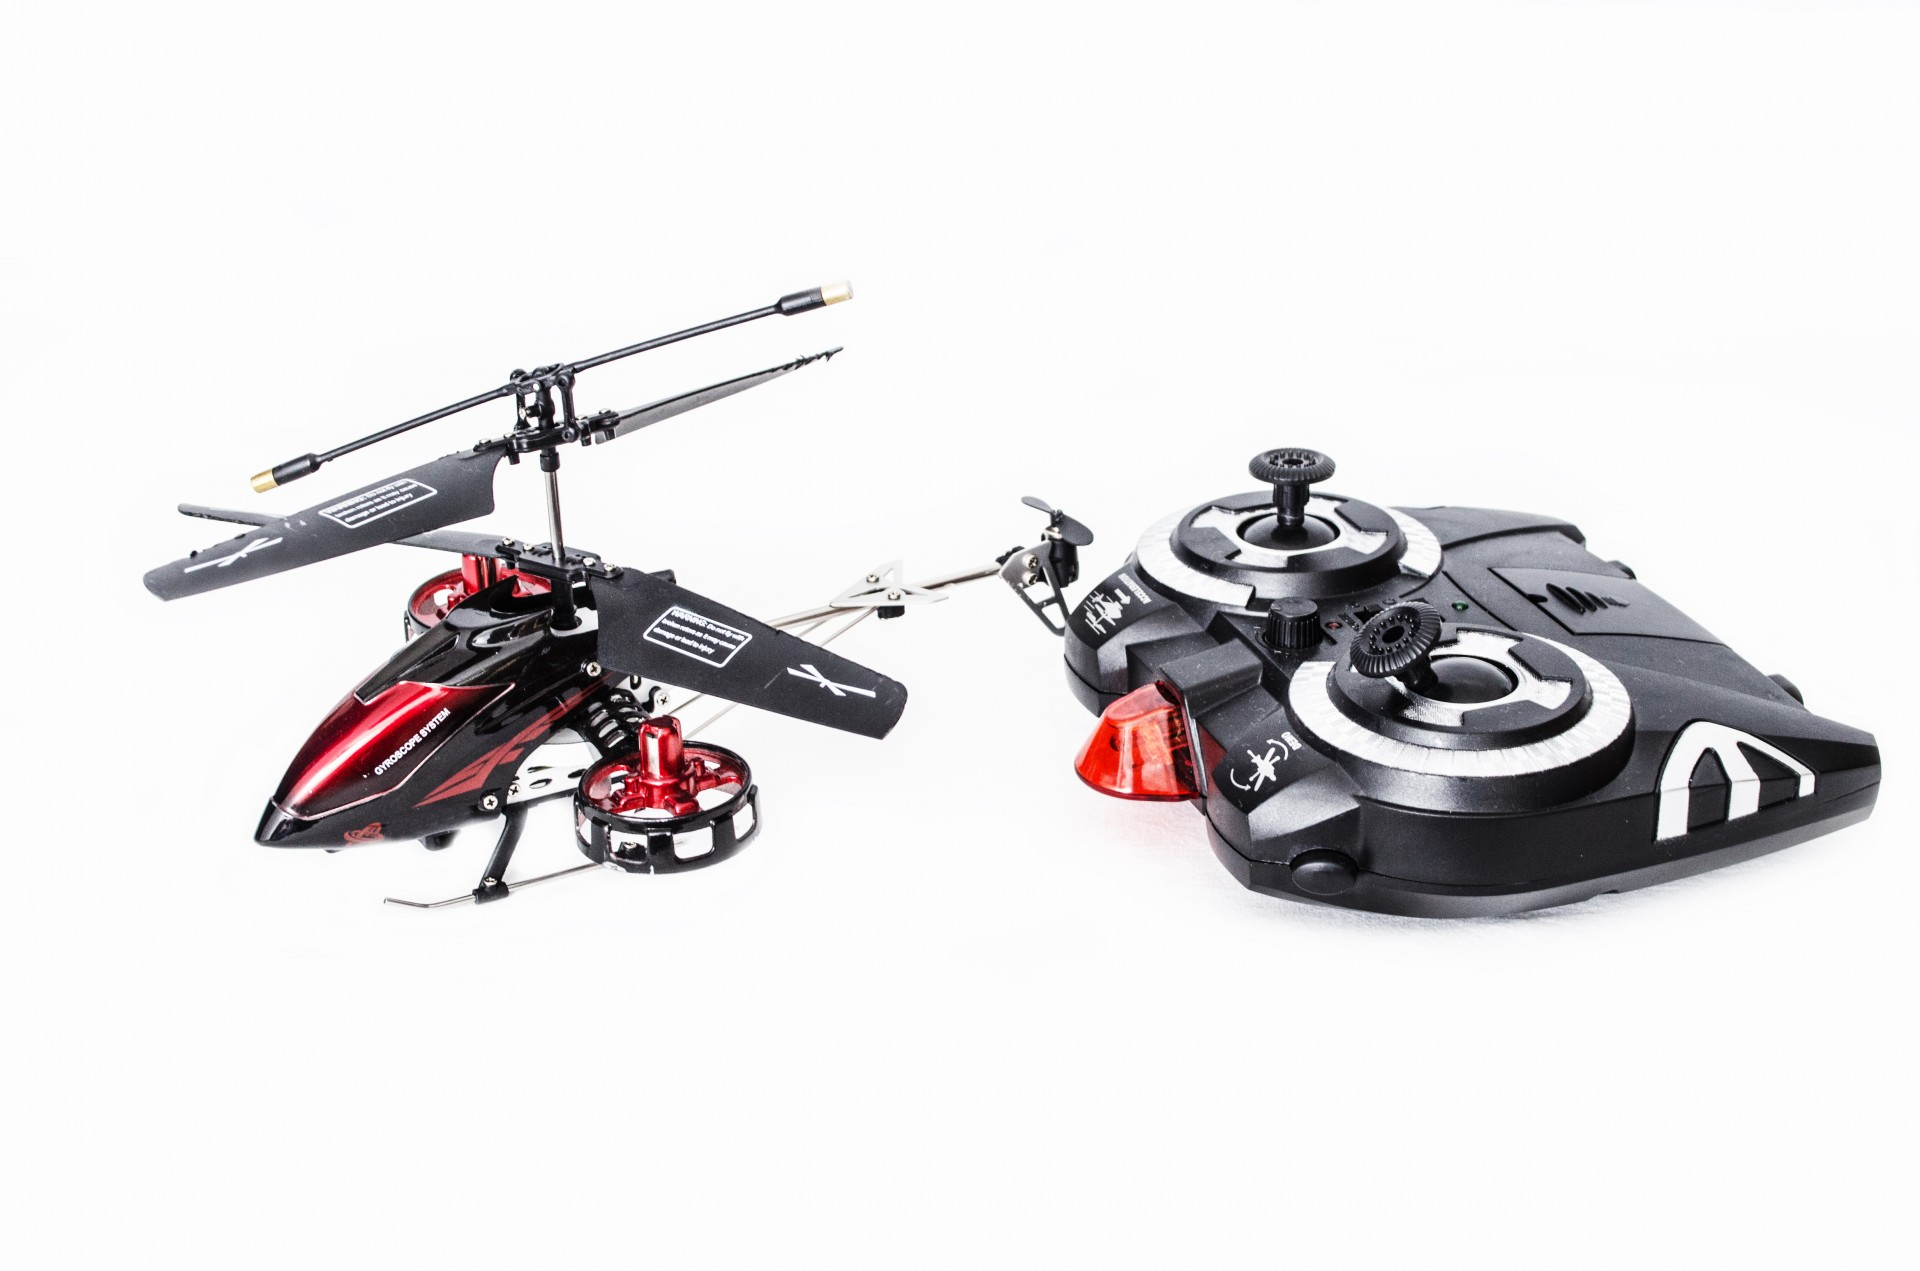 Remote Controlled Helicopter Free Stock Photo